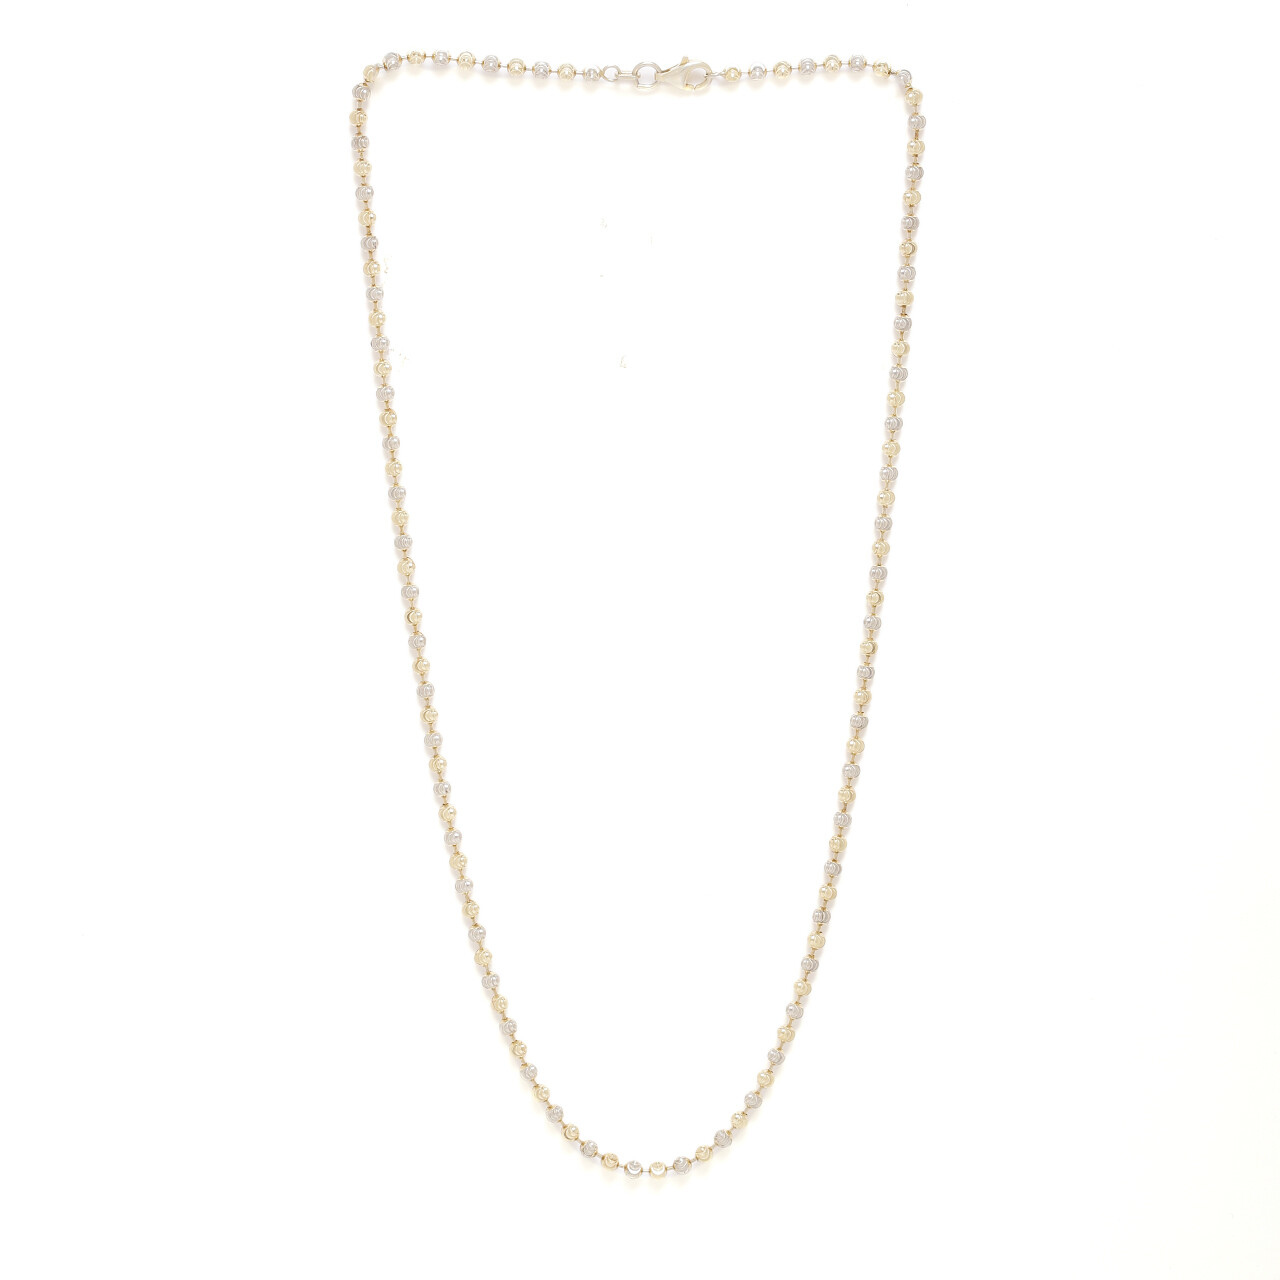 IndusDiva Two Tone Laser Cut Beads Necklace Chain